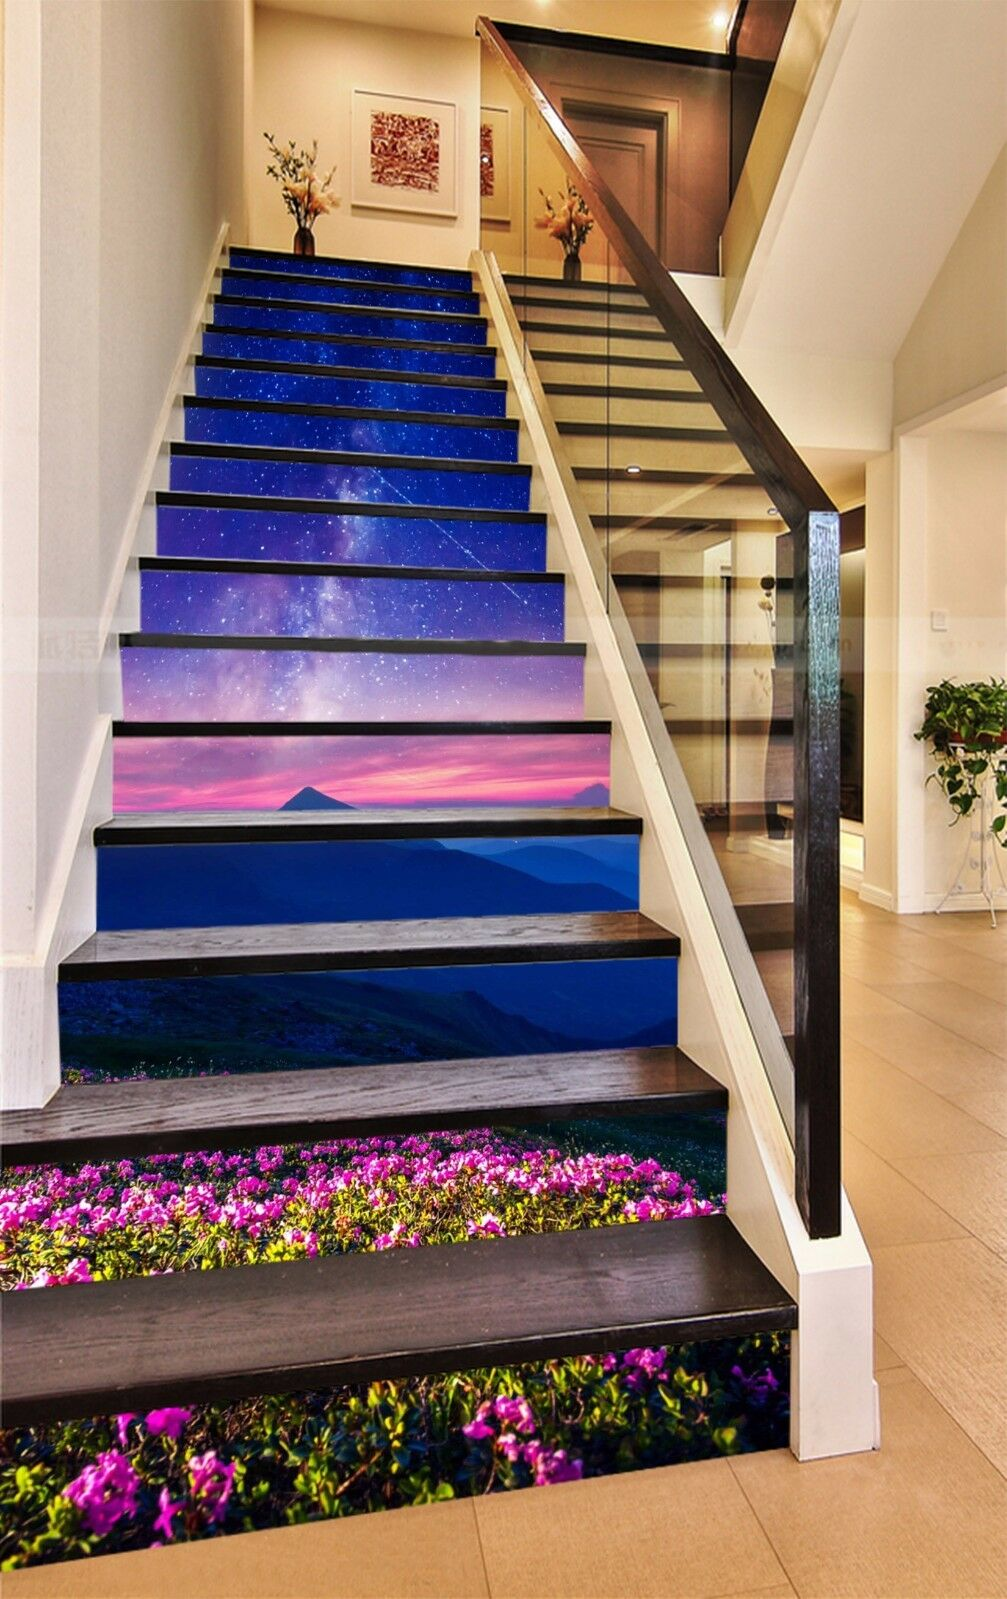 3D Starry sky Hill 8Stair Risers Decoration Photo Mural Vinyl Decal Wallpaper AU